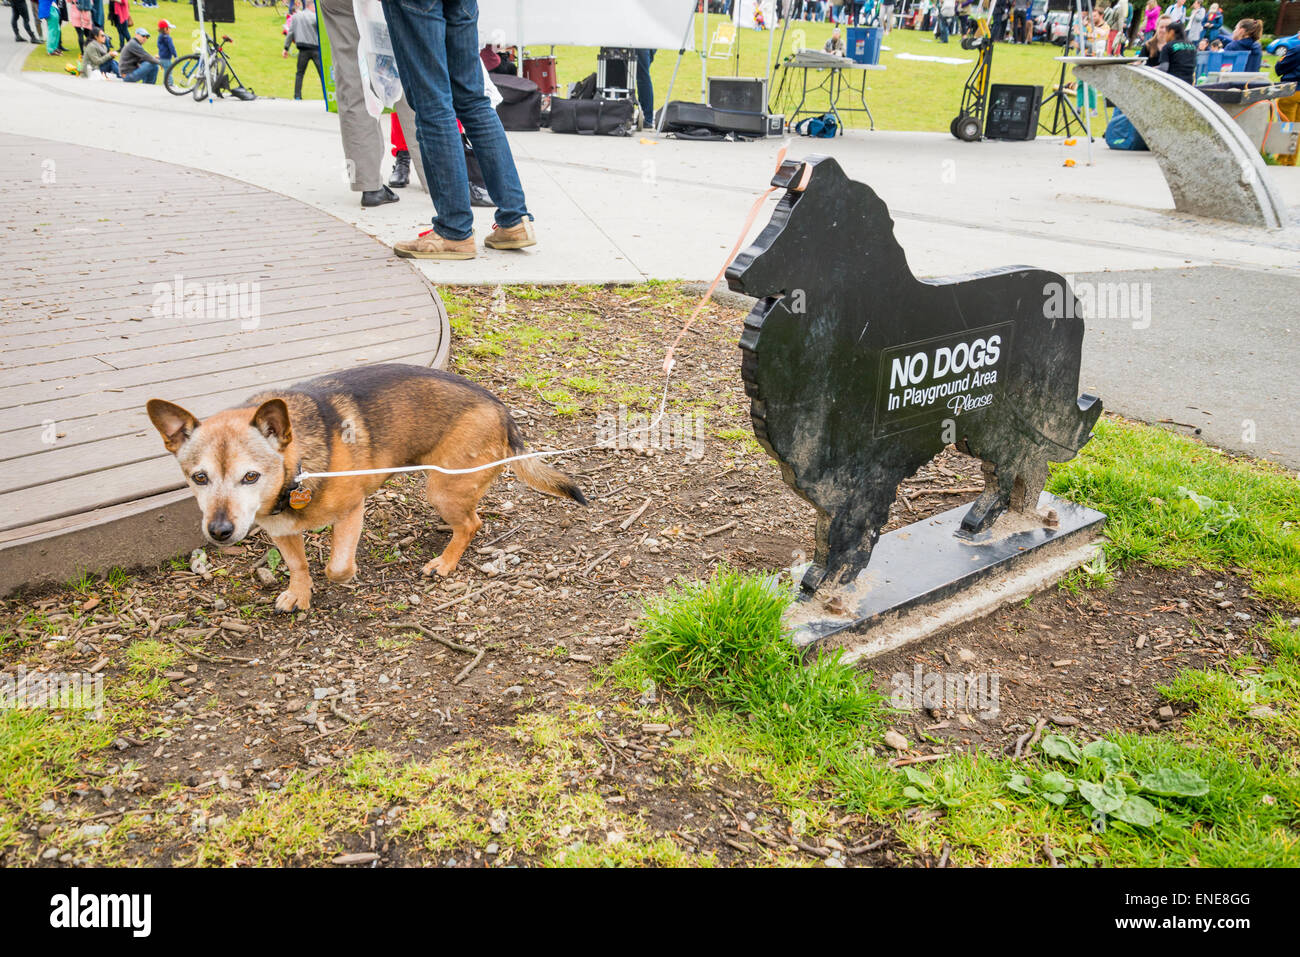 Dog tied to no dogs sign. - Stock Image